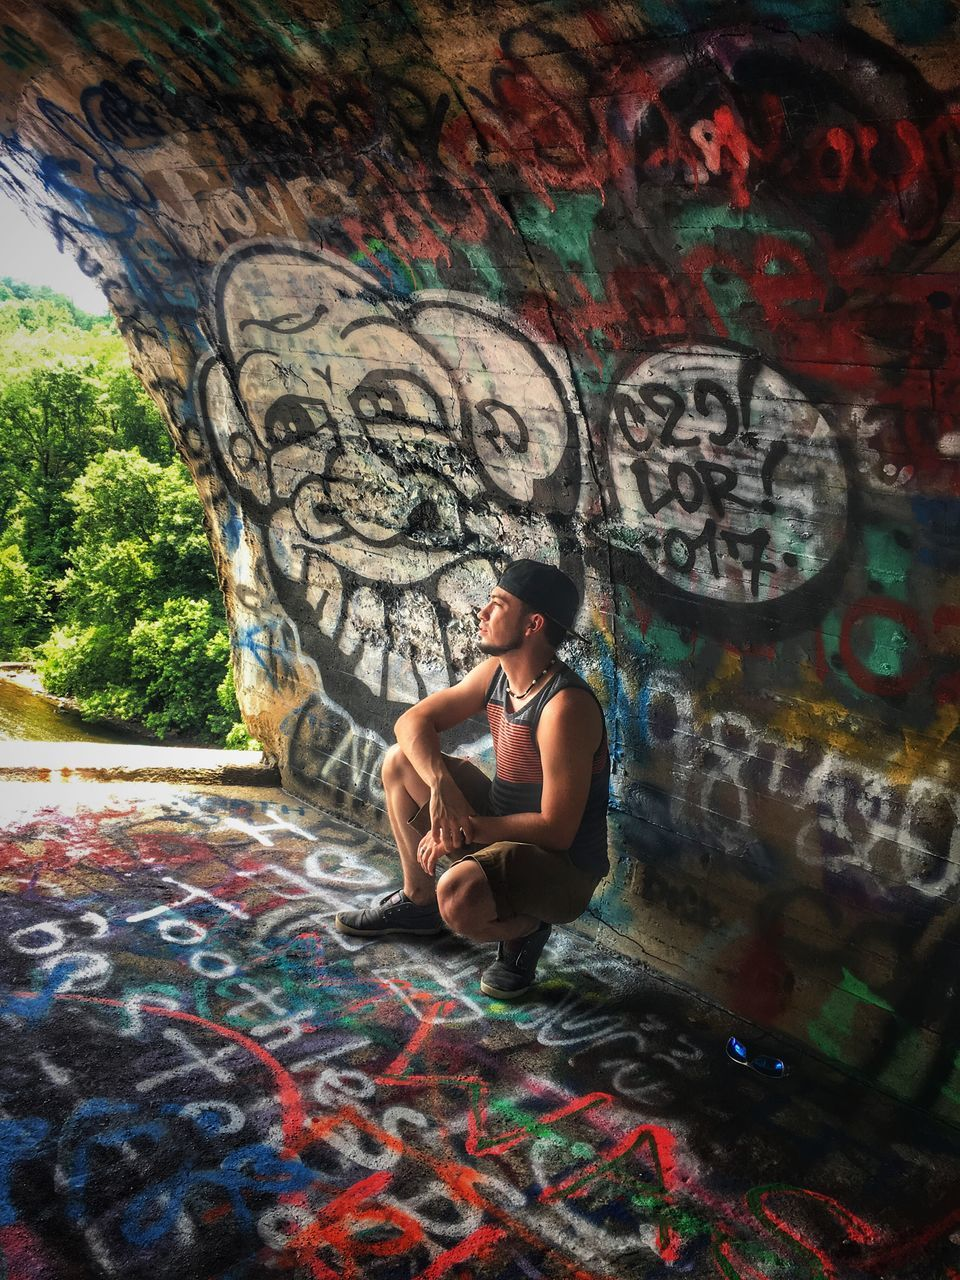 graffiti, art and craft, real people, one person, lifestyles, street art, full length, leisure activity, young adult, multi colored, artist, day, outdoors, sitting, young women, architecture, tree, people